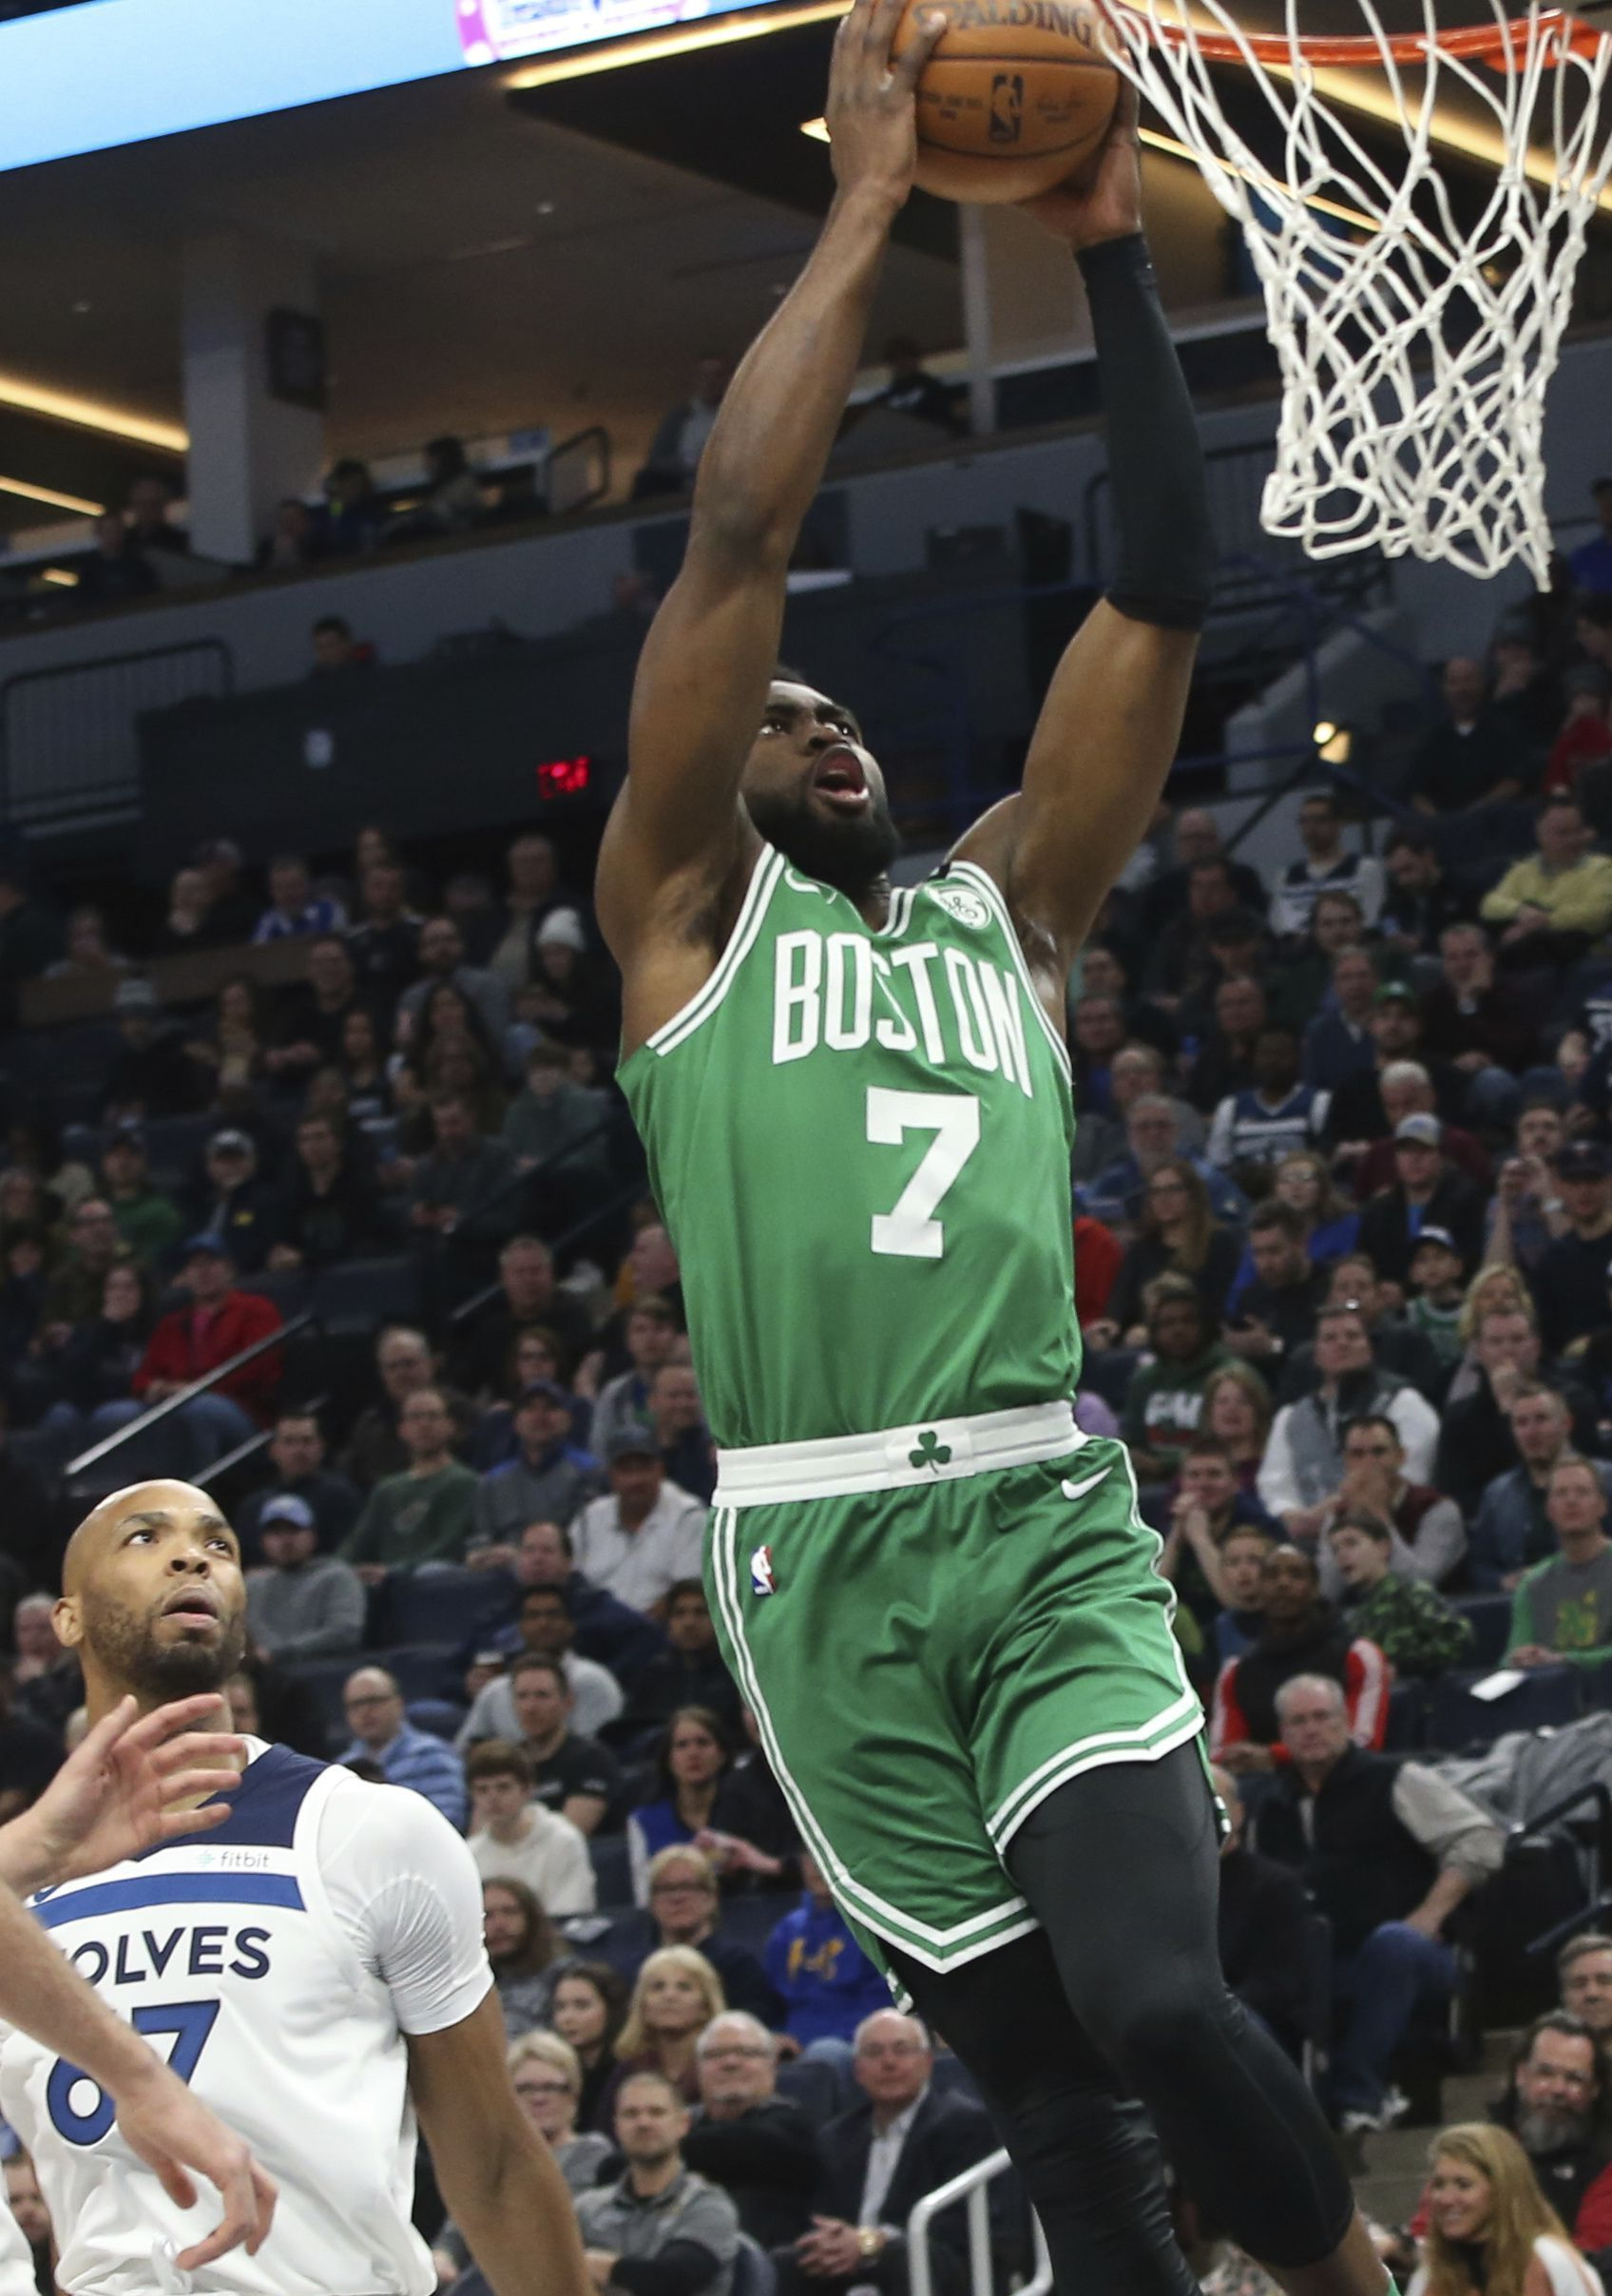 Celtics Jaylen Brown Recounts Fall That Caused Concussion